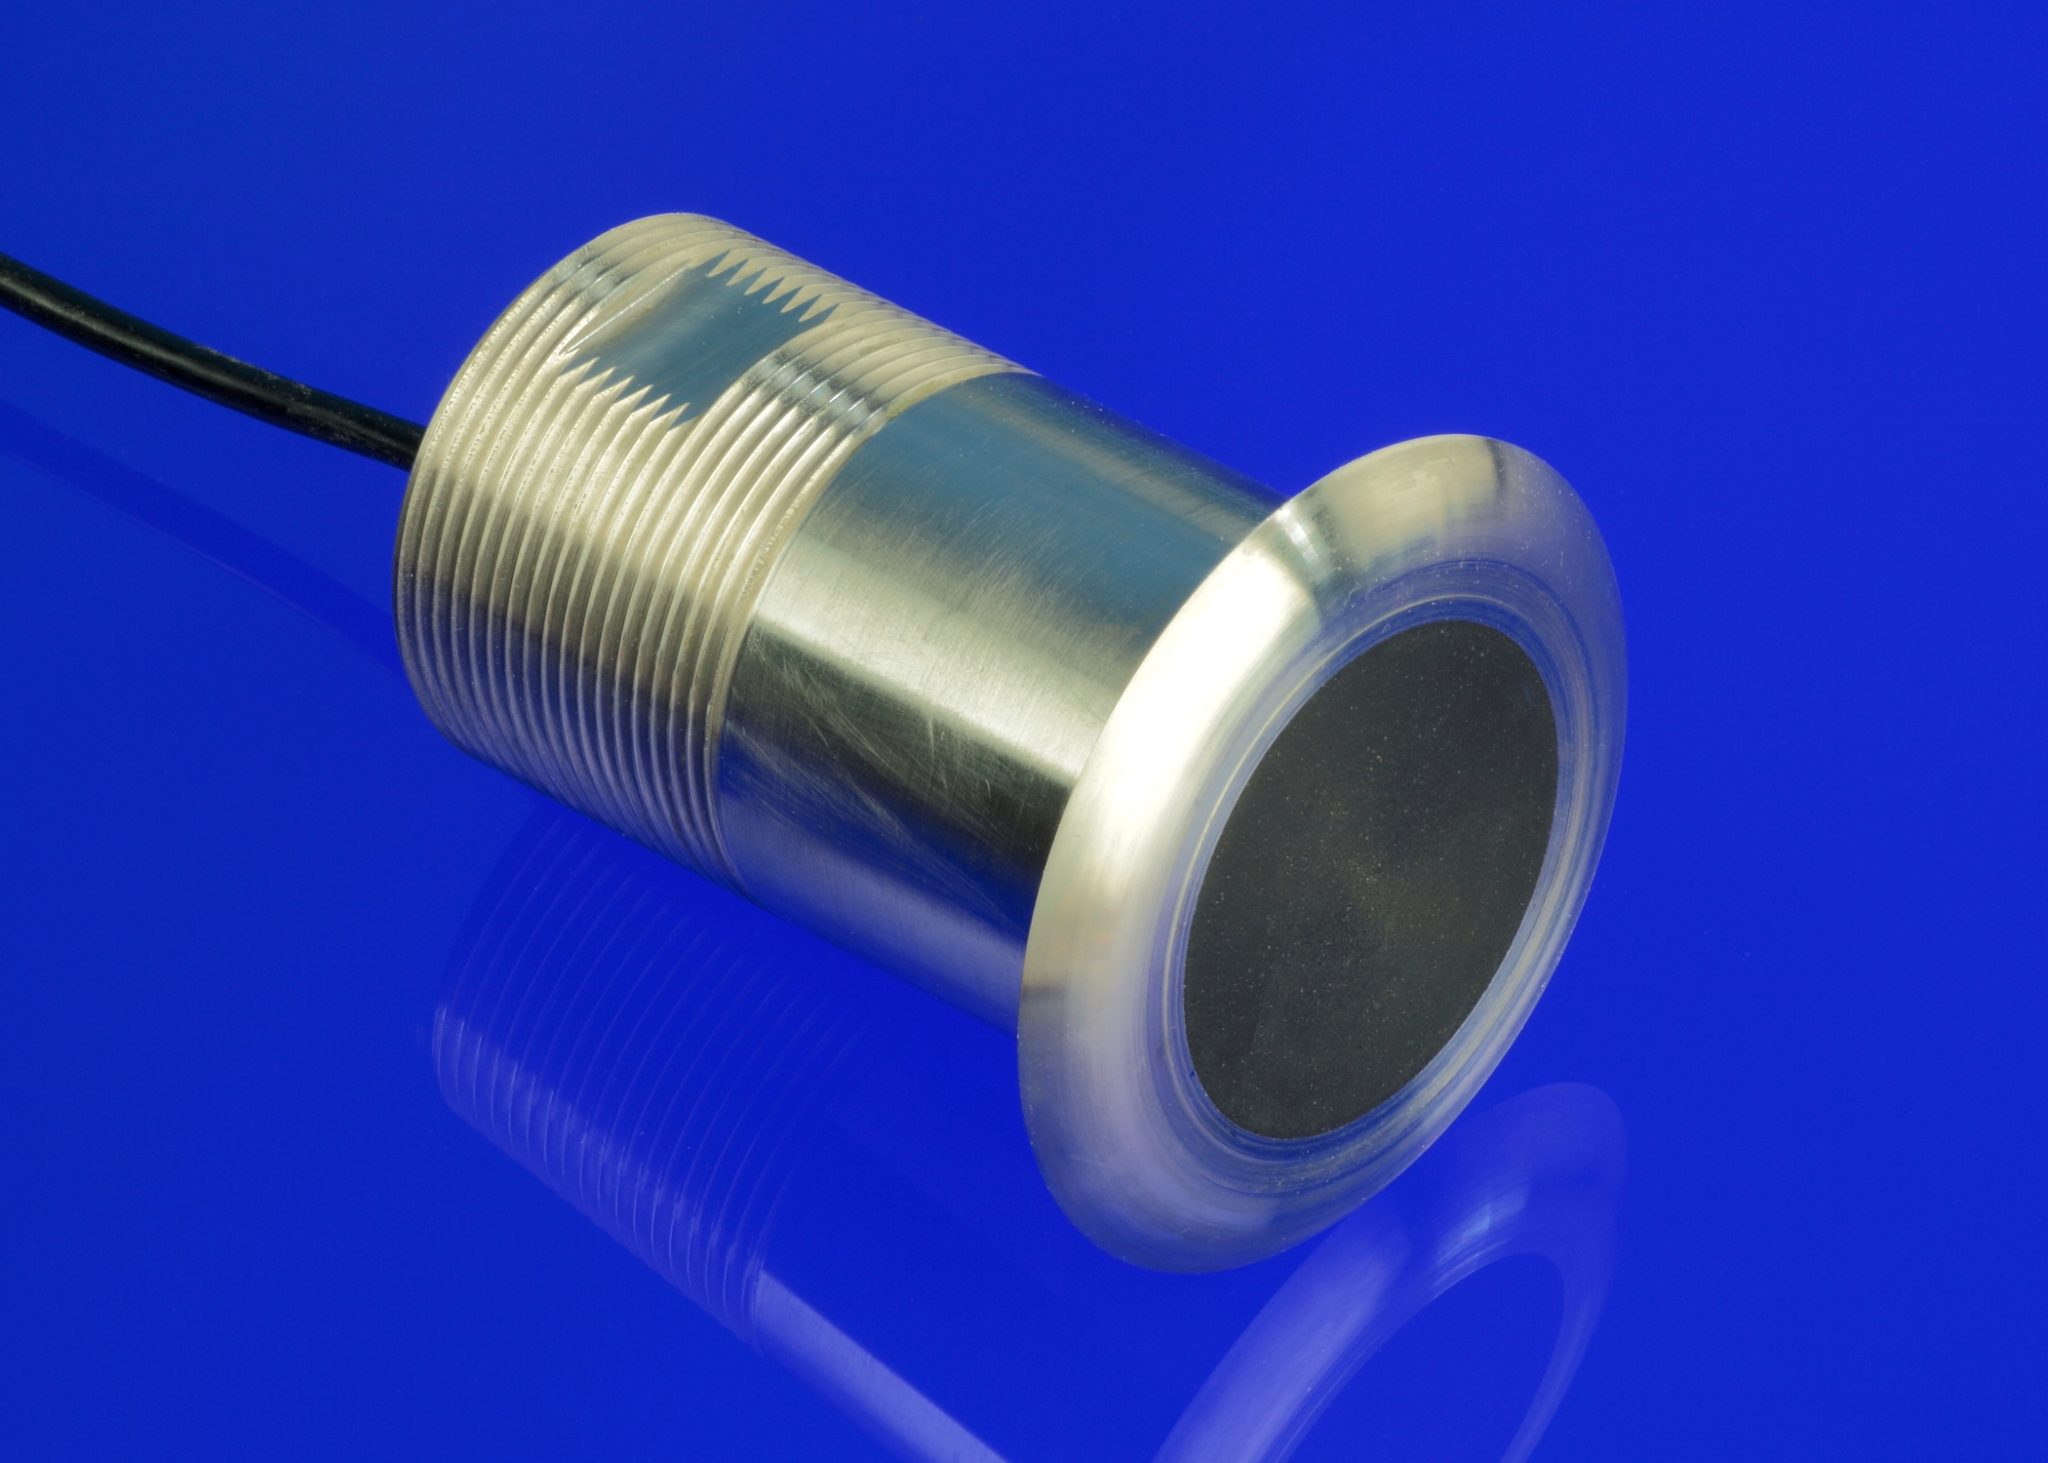 Morgan Technical Ceramics launches new wideband transducer ...